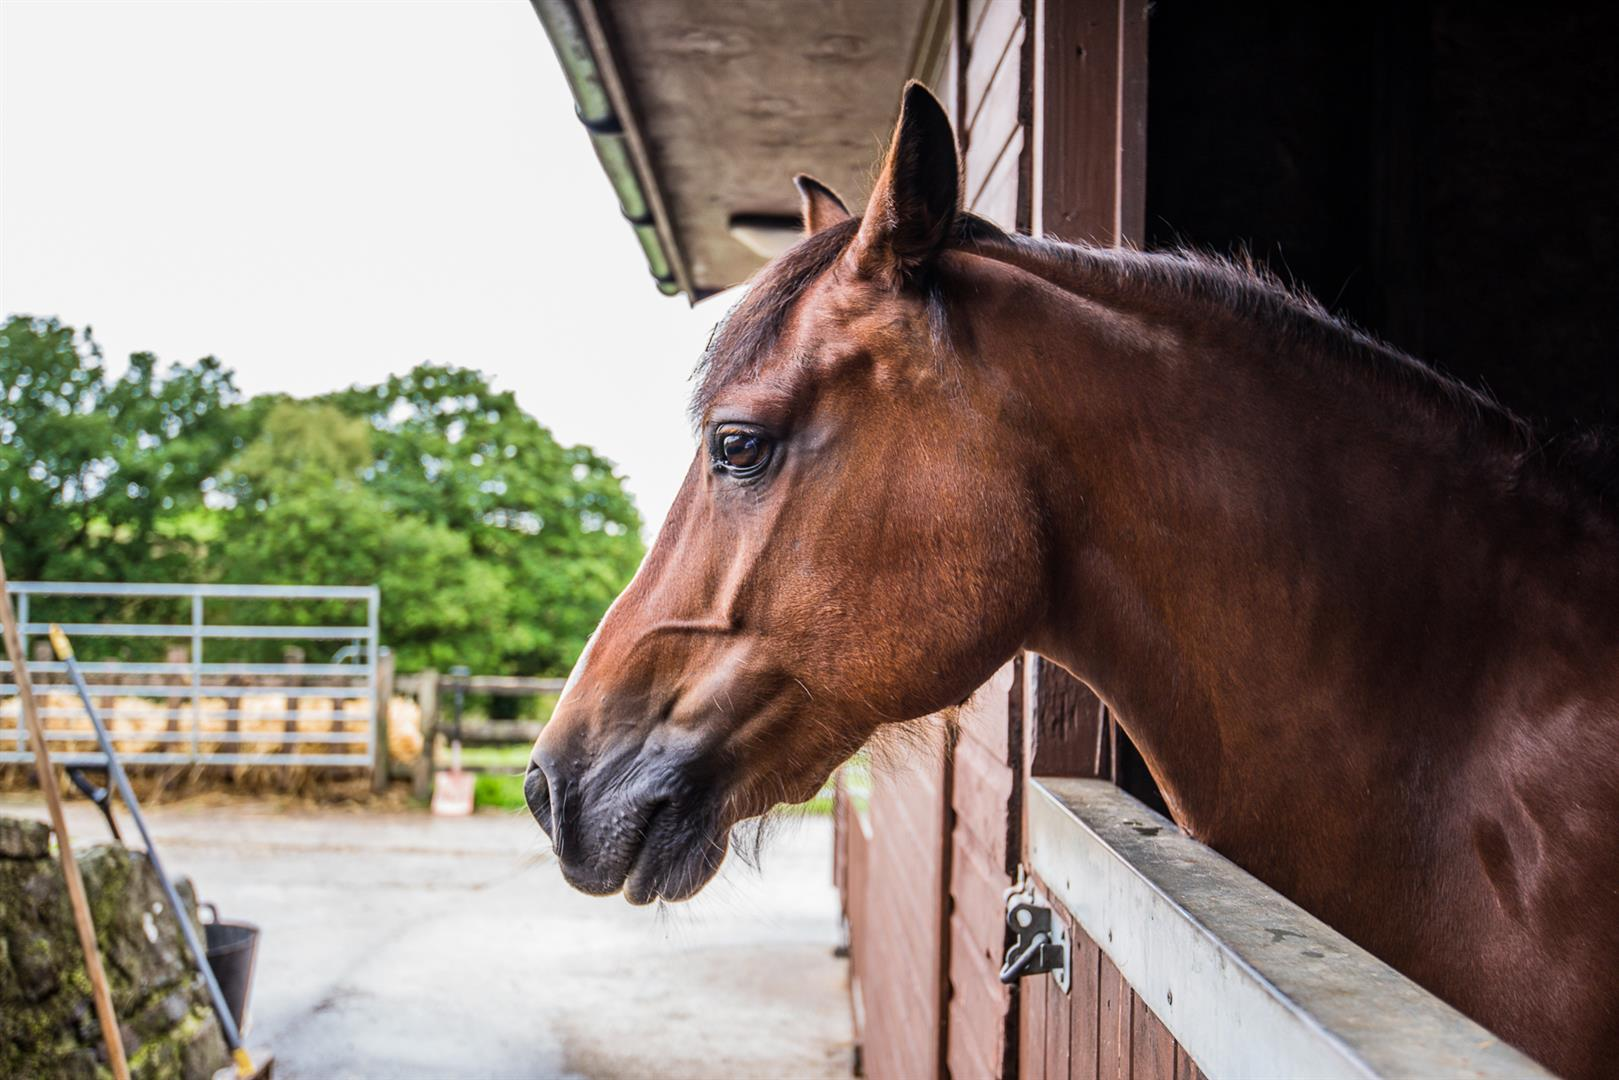 5 bedroom house Sale Agreed in Bolton - pony looking out.jpg.